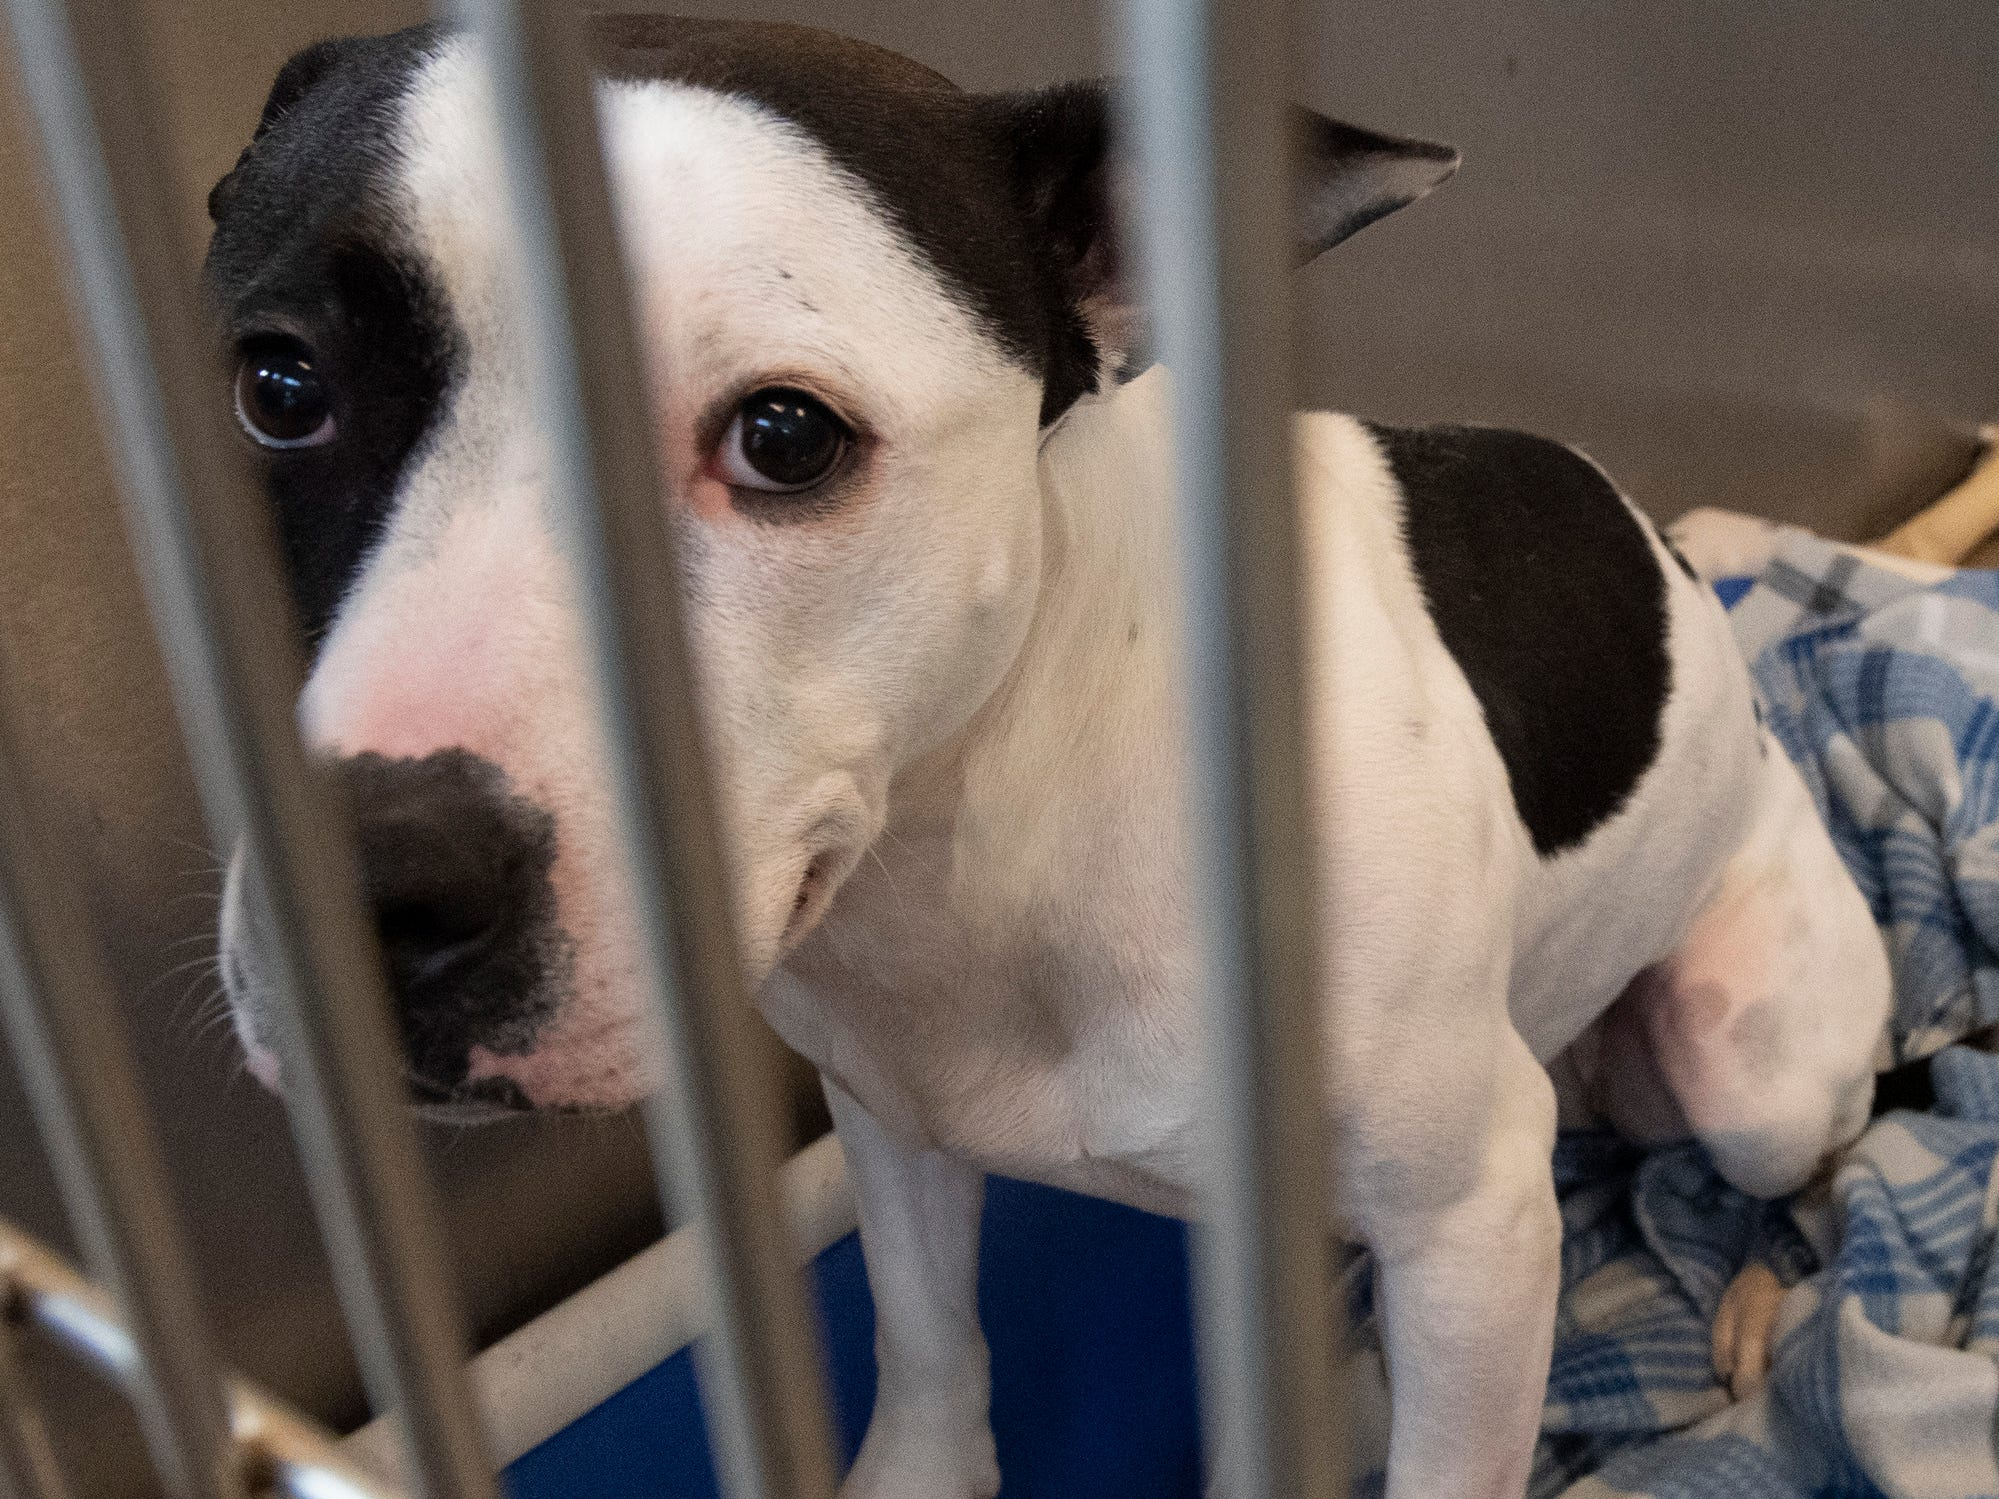 Stella is a 5-year-old Pit Bull who was returned to the shelter because her owner no longer had a place to live. Stella lived with cats, children and gets along with other dogs as well. She loves attention all the time and is available at the York County SPCA Tuesday February 26, 2019.